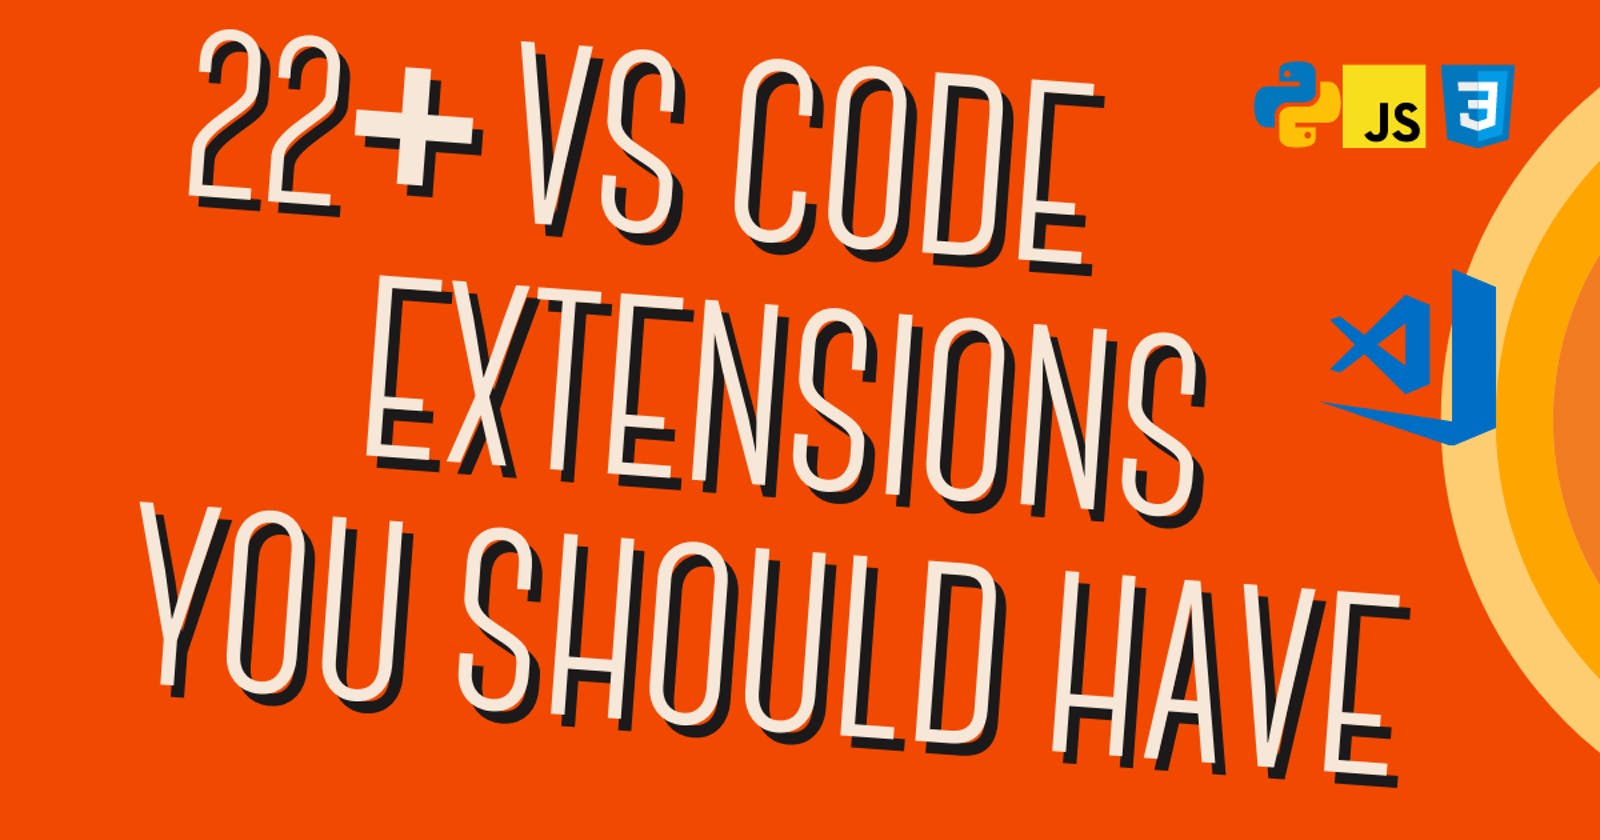 22+ VS Code extension you should have